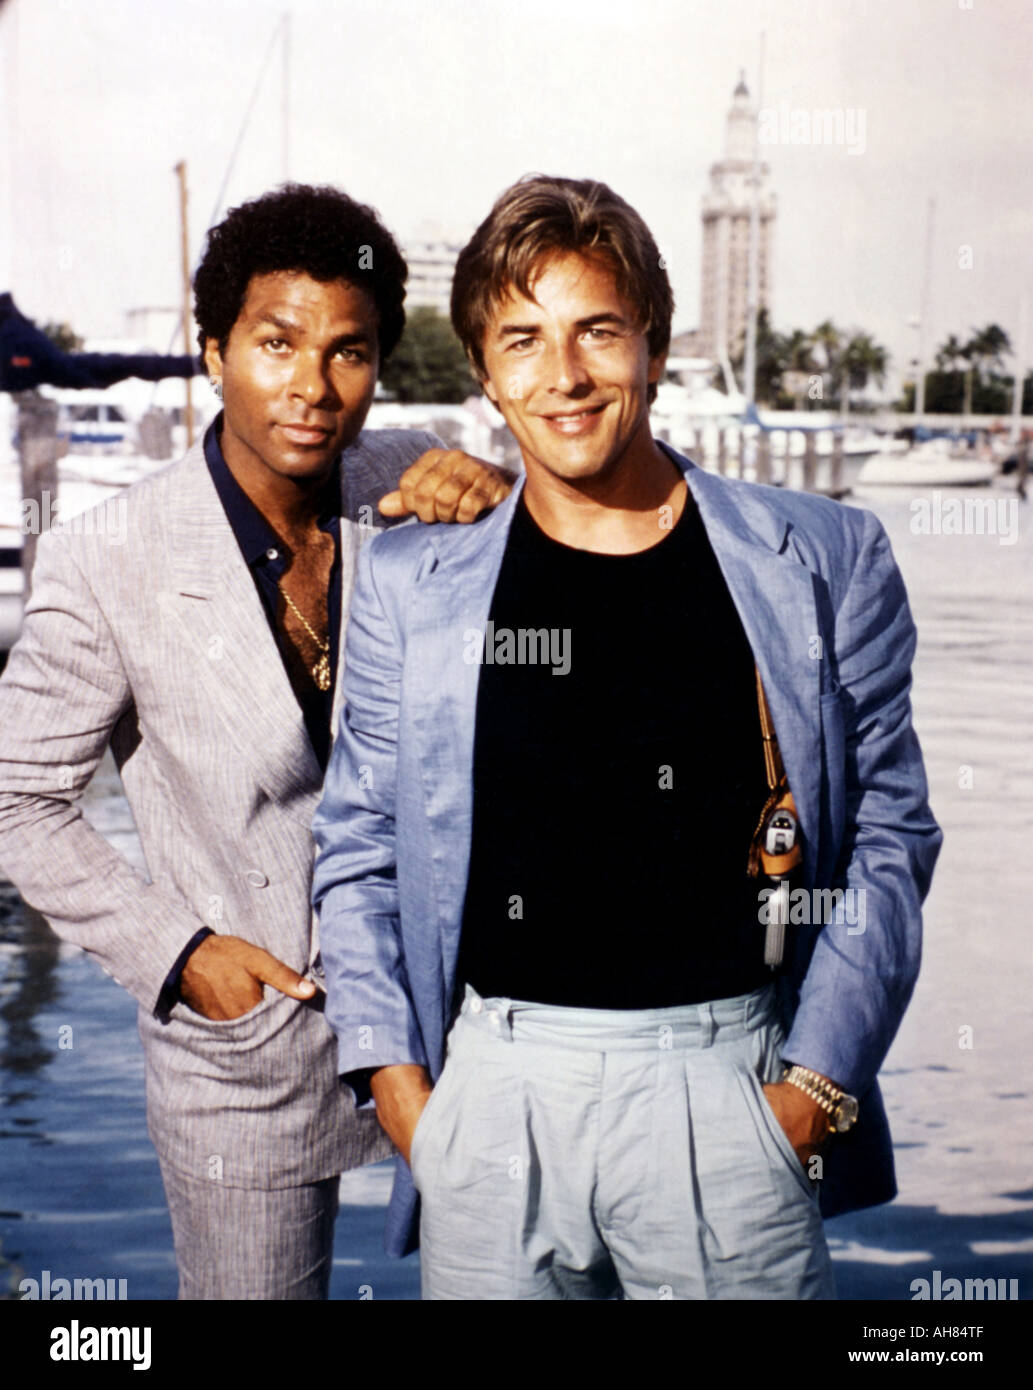 5d870fd4ecc32 Miami Vice Stock Photos & Miami Vice Stock Images - Alamy